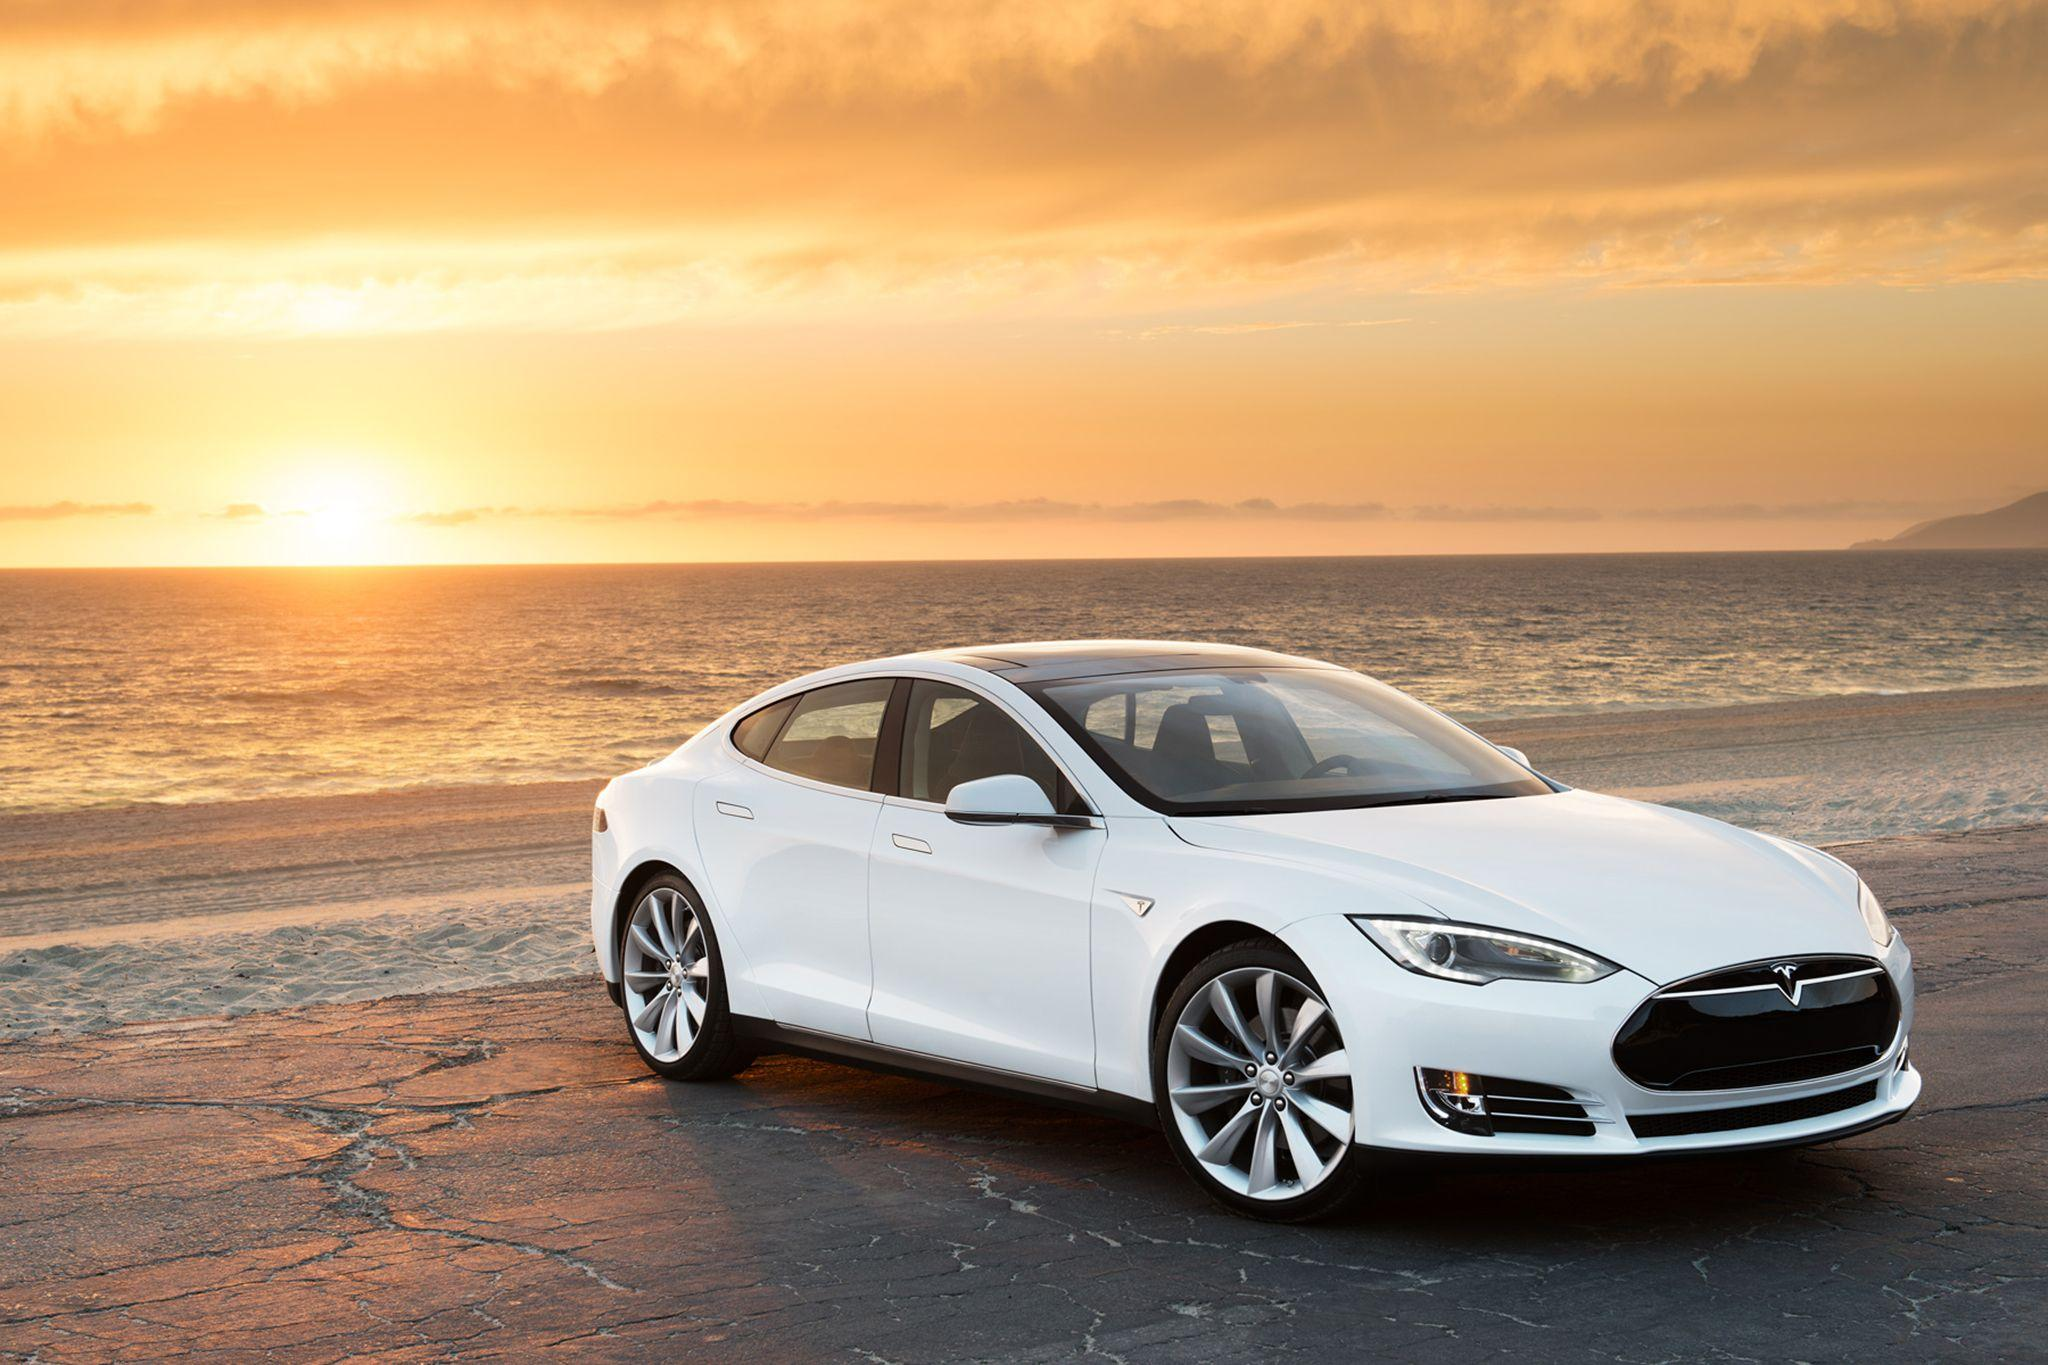 Tesla Model S Pric HD Wallpaper, Backgrounds Image